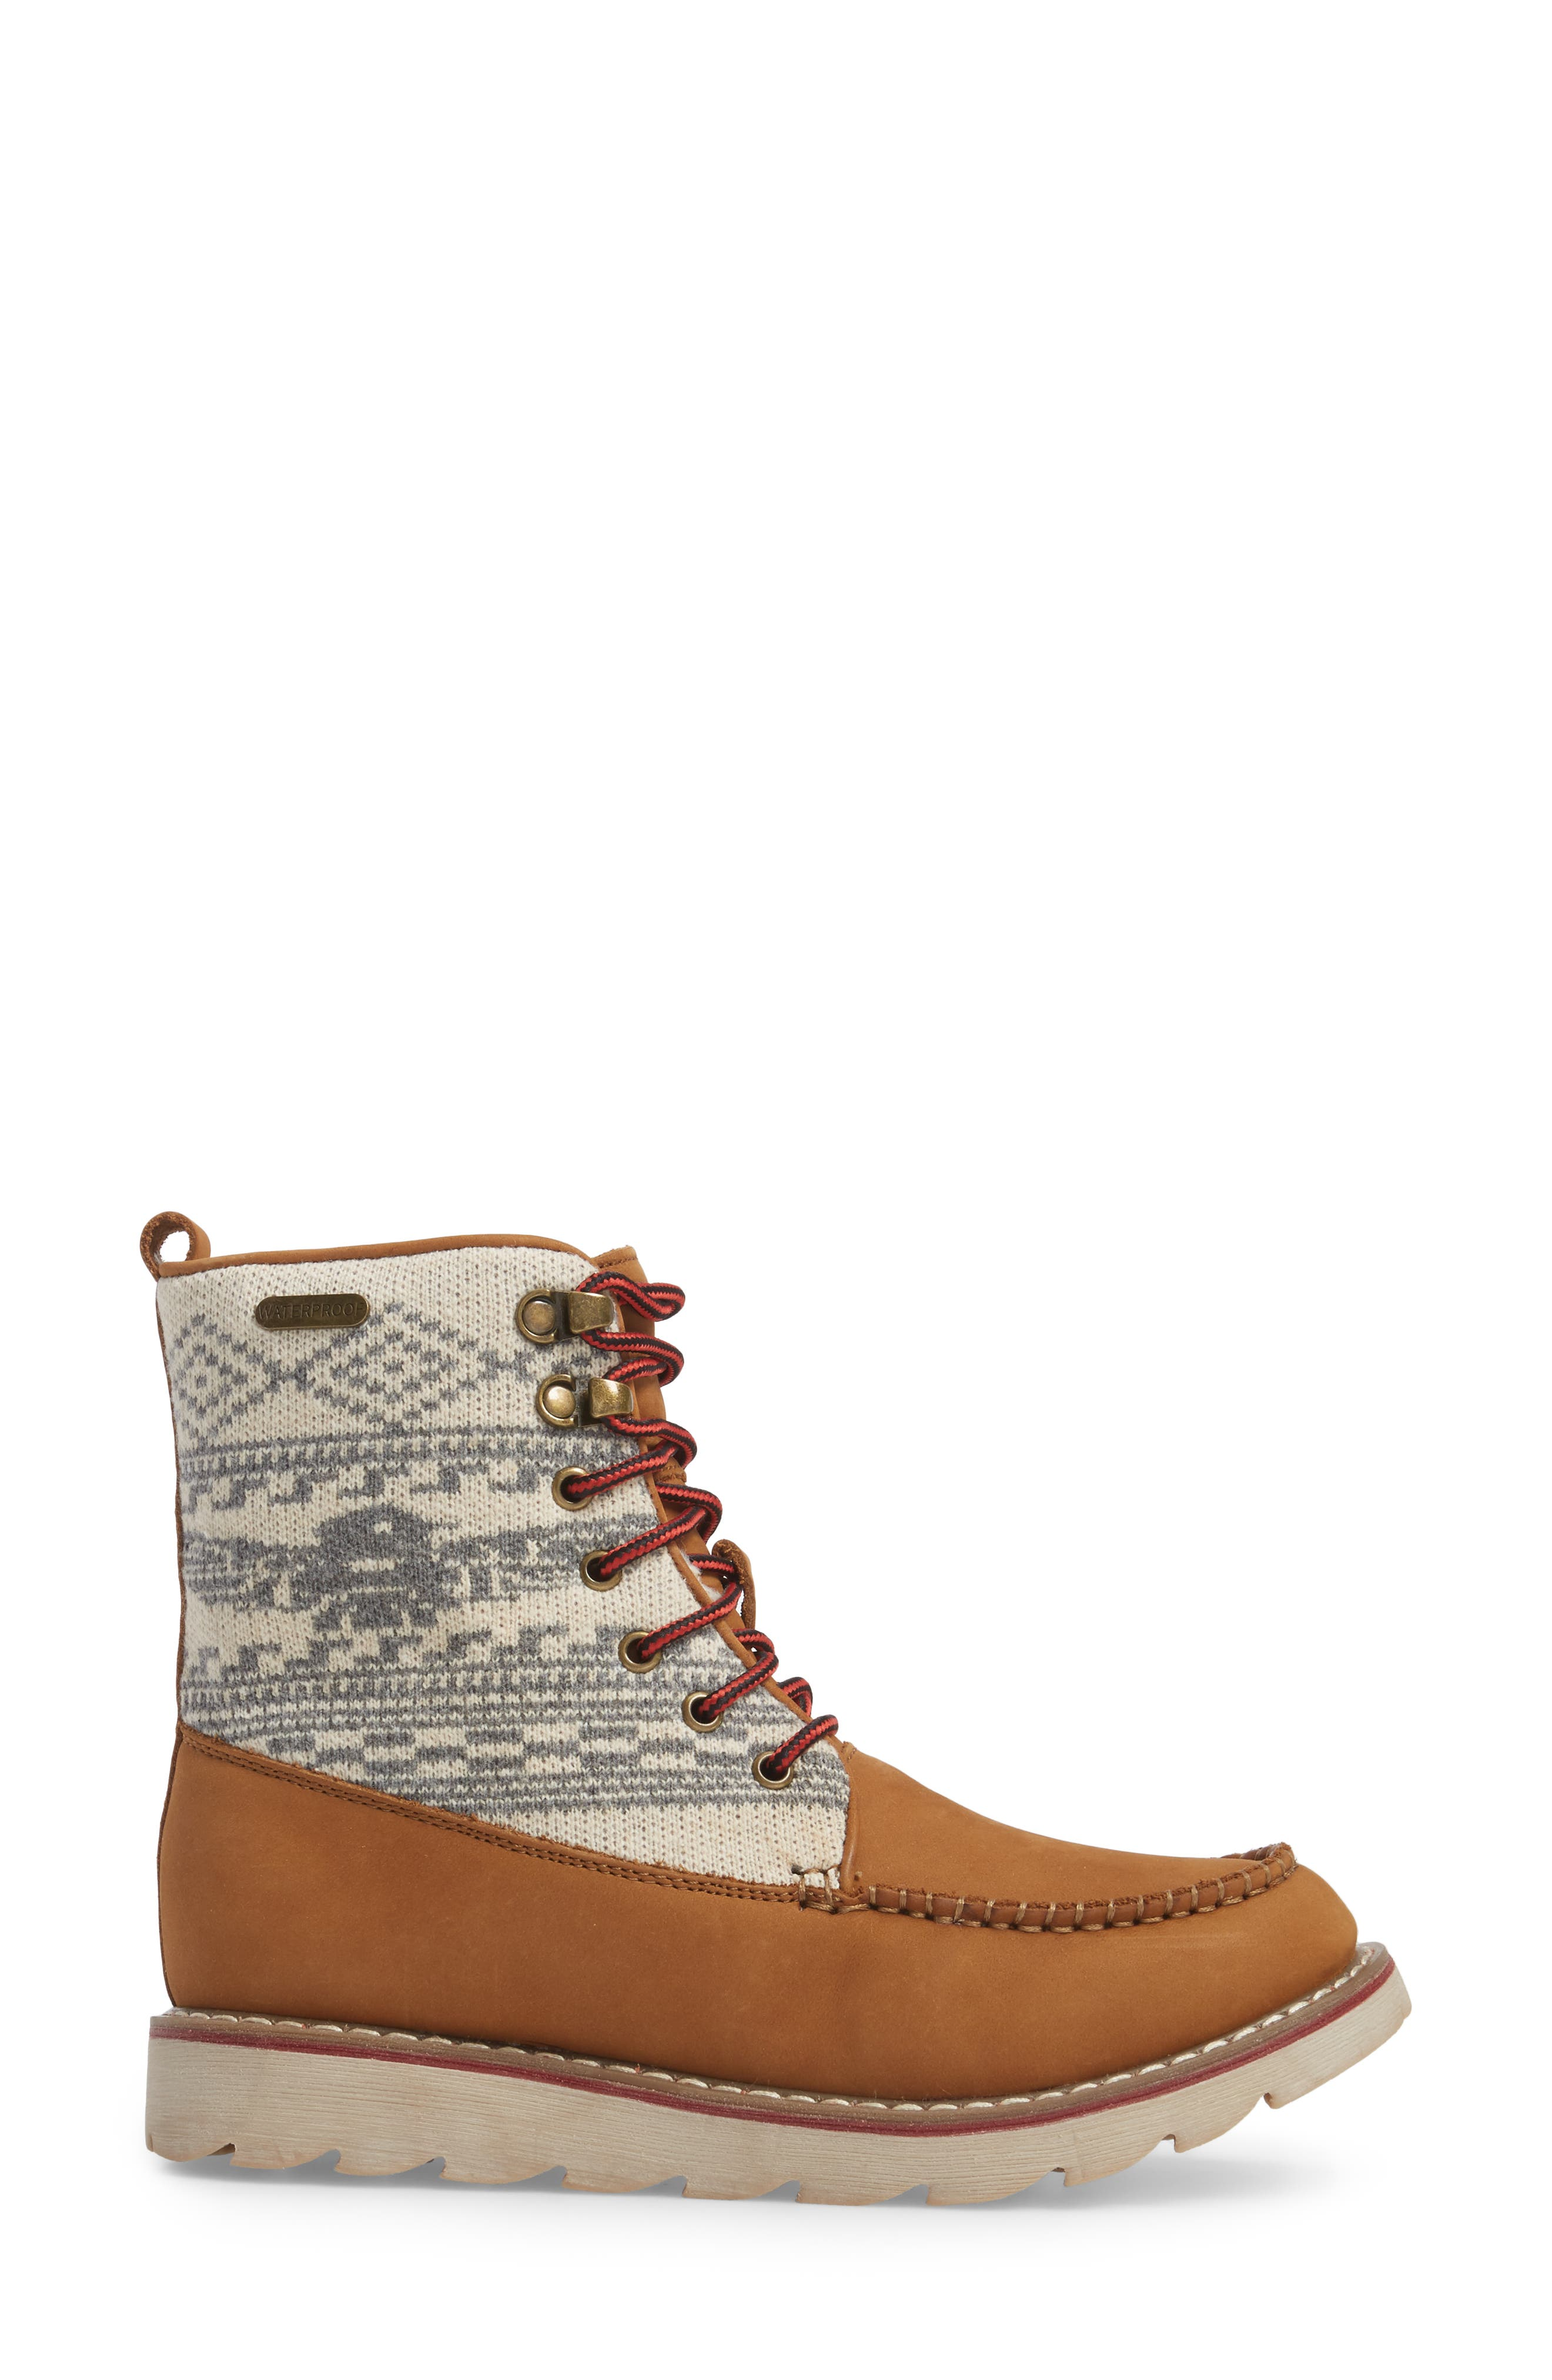 Patterned Waterproof Snow Boot,                             Alternate thumbnail 3, color,                             Tan Leather